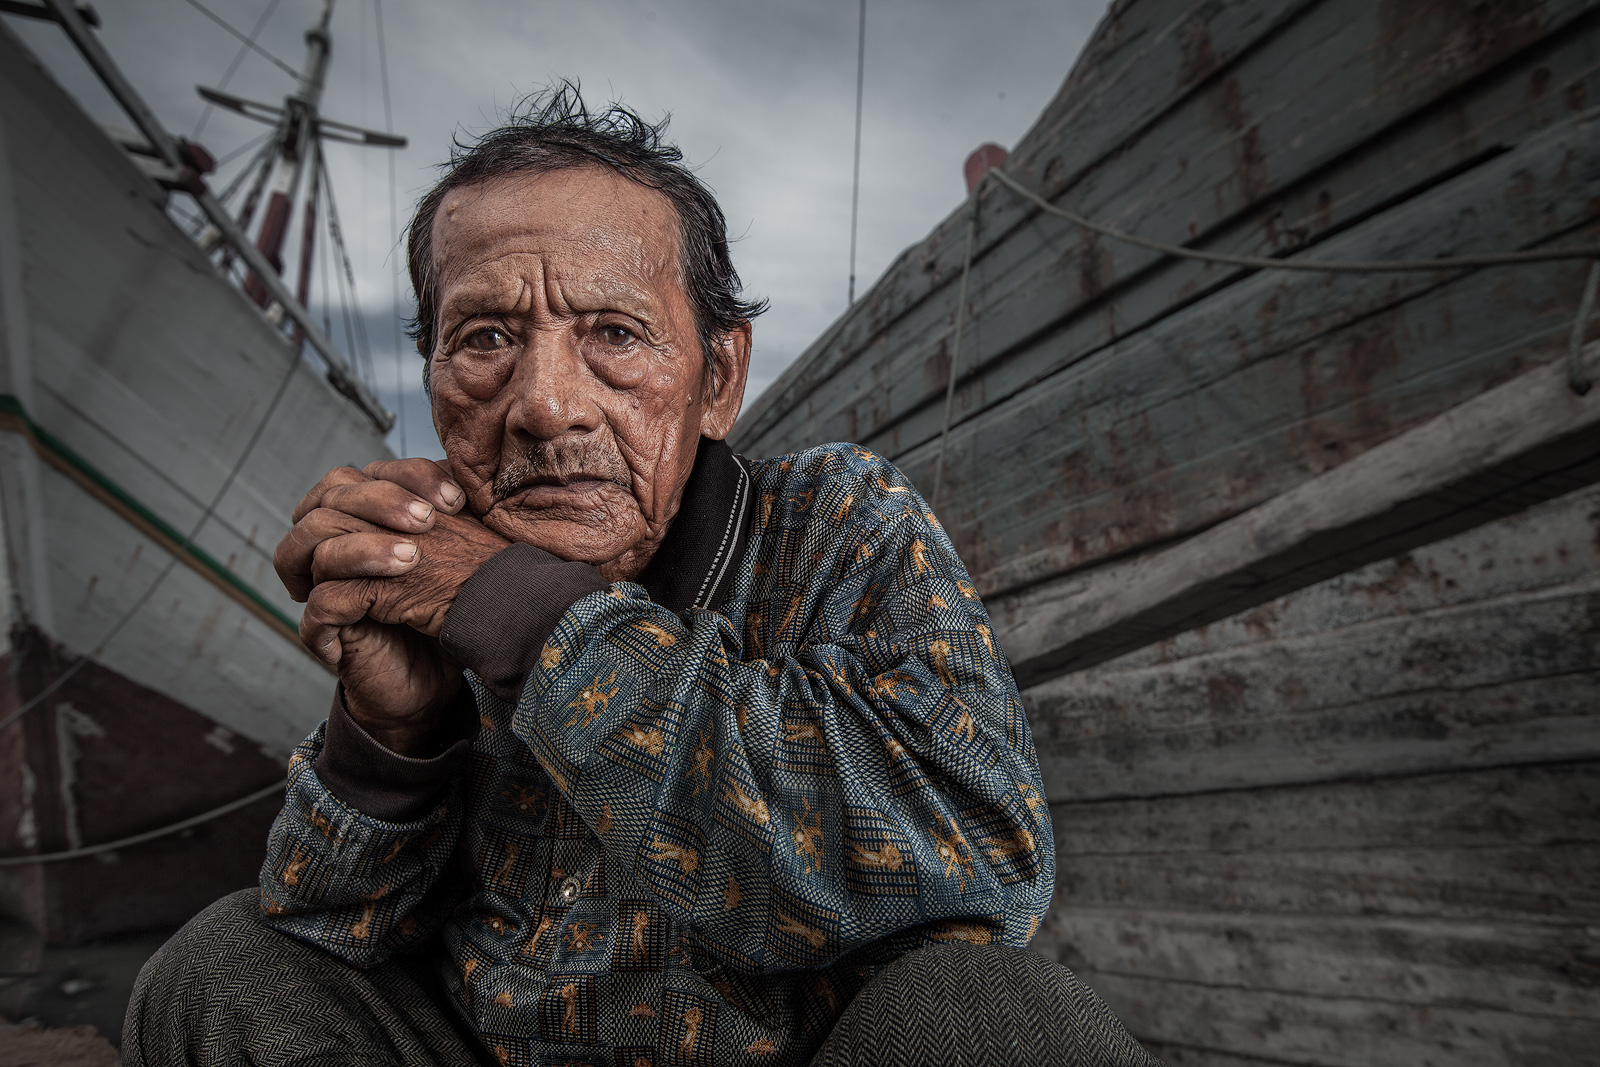 asia,asian,boat,dock,dock worker,environmental portait,indonesia,indonesian,jakarta,java,portrait,ship,sunda kelapa,west java